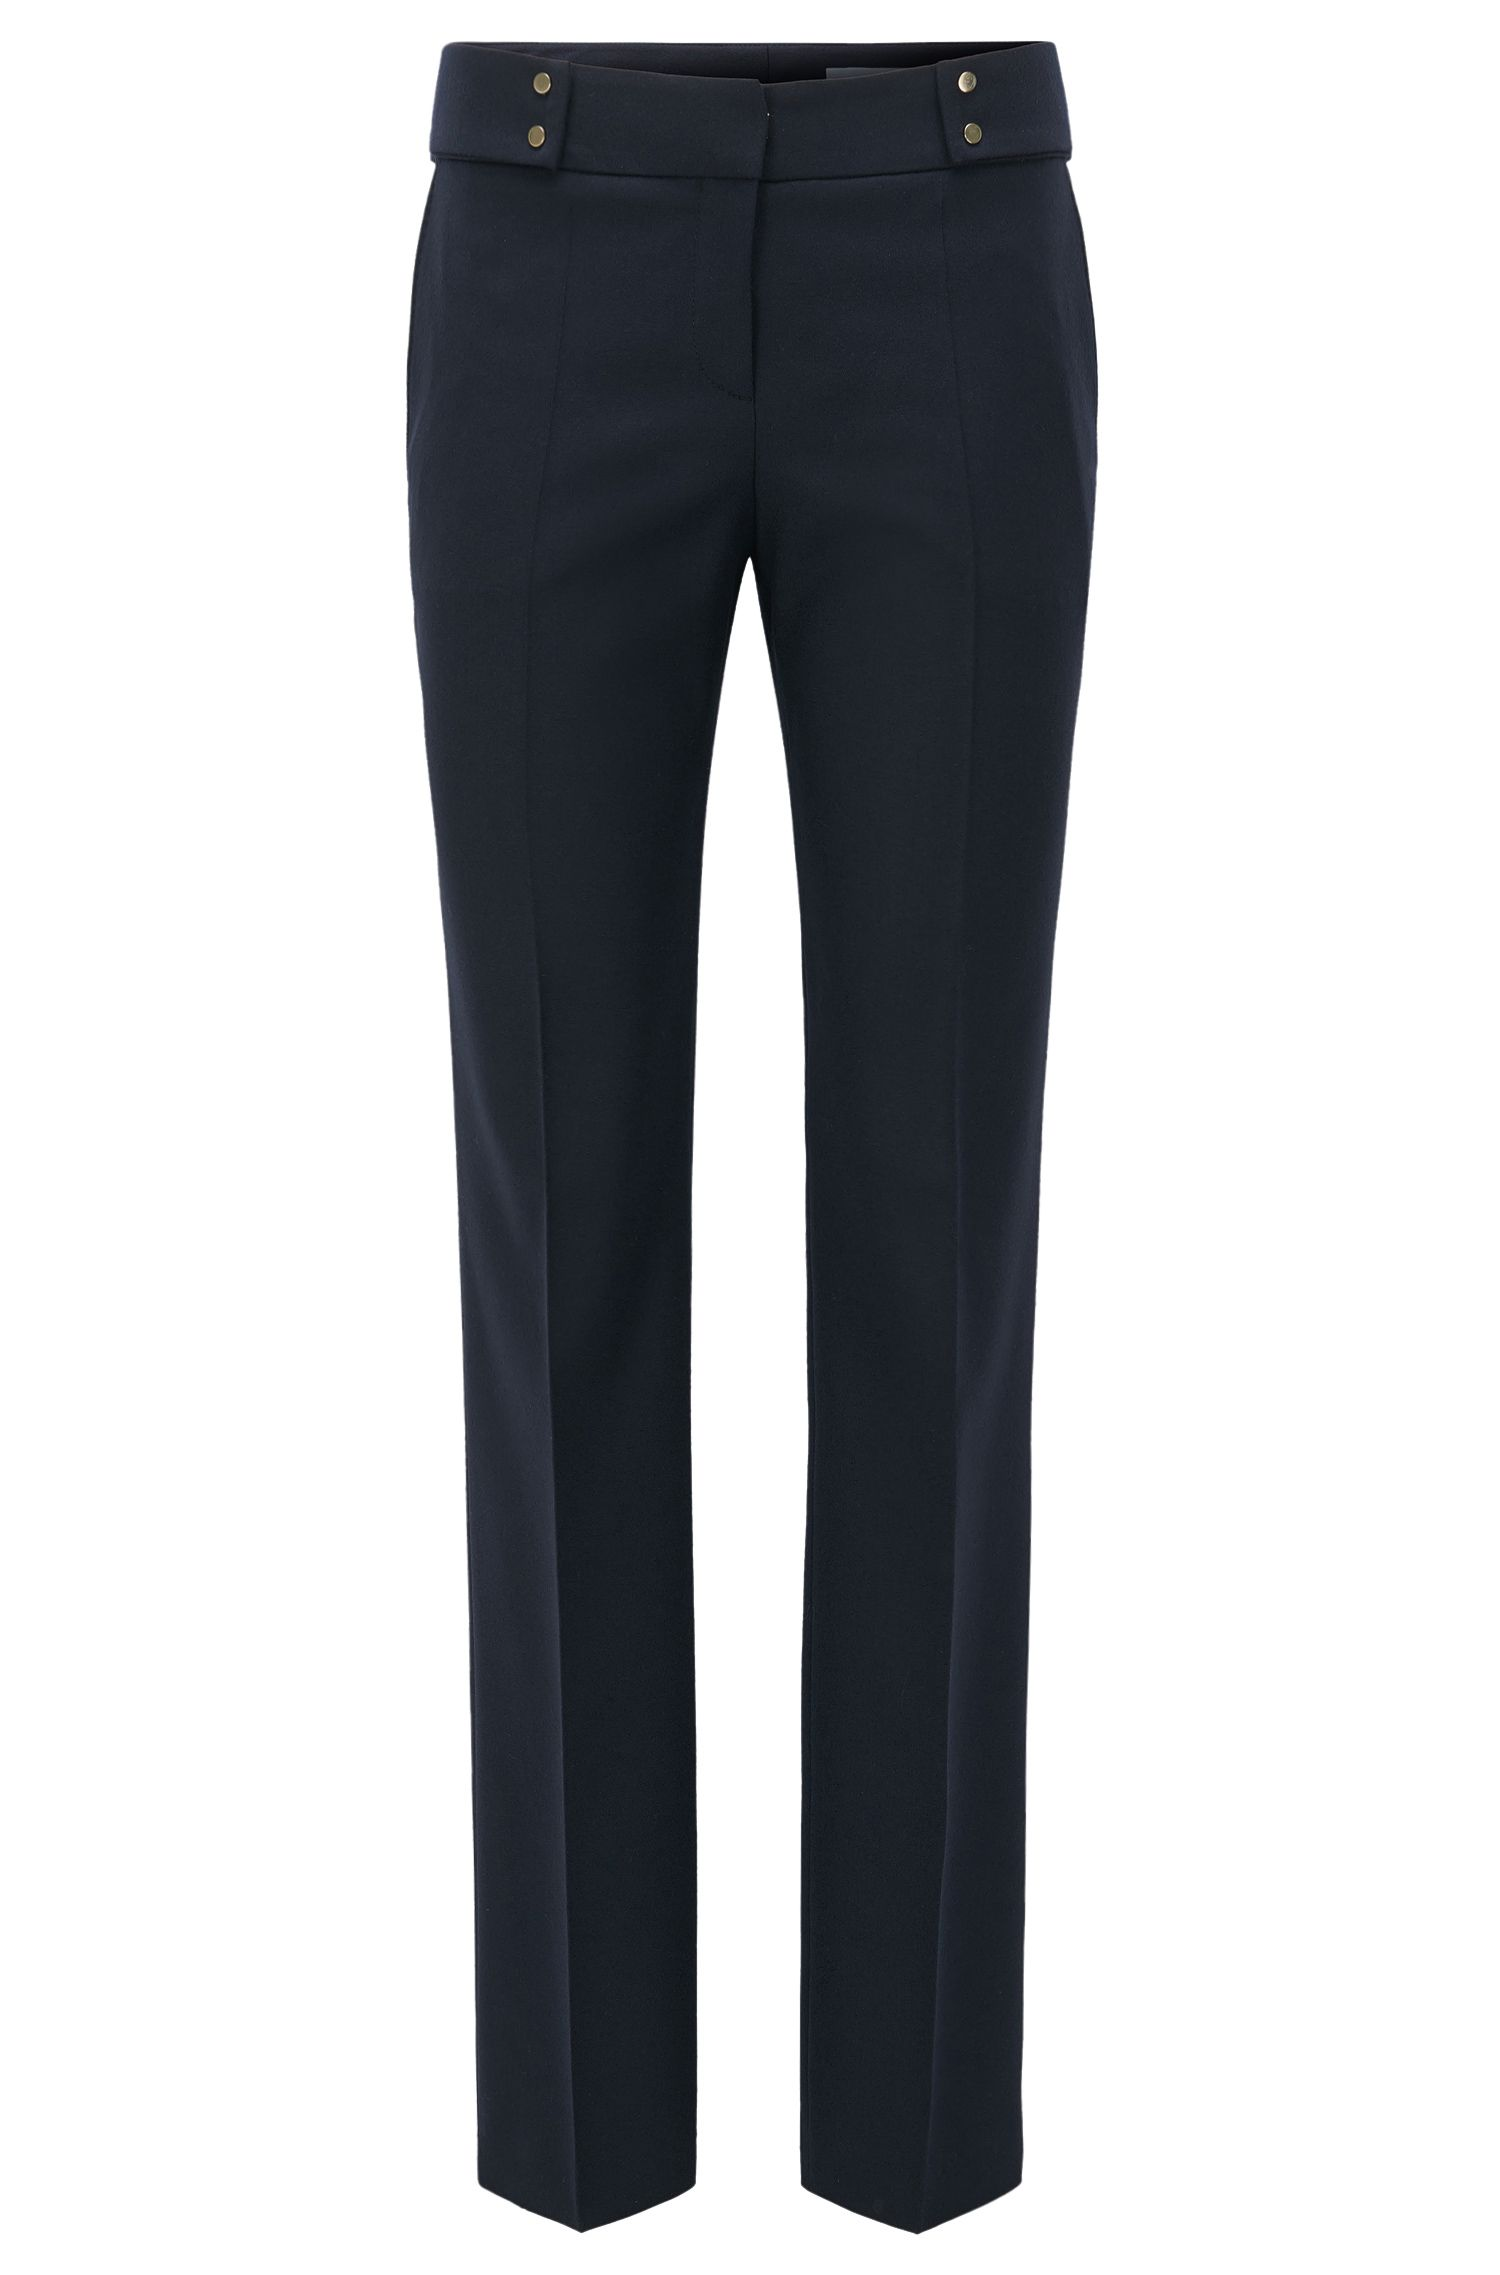 Straight-leg trousers in a wool mix